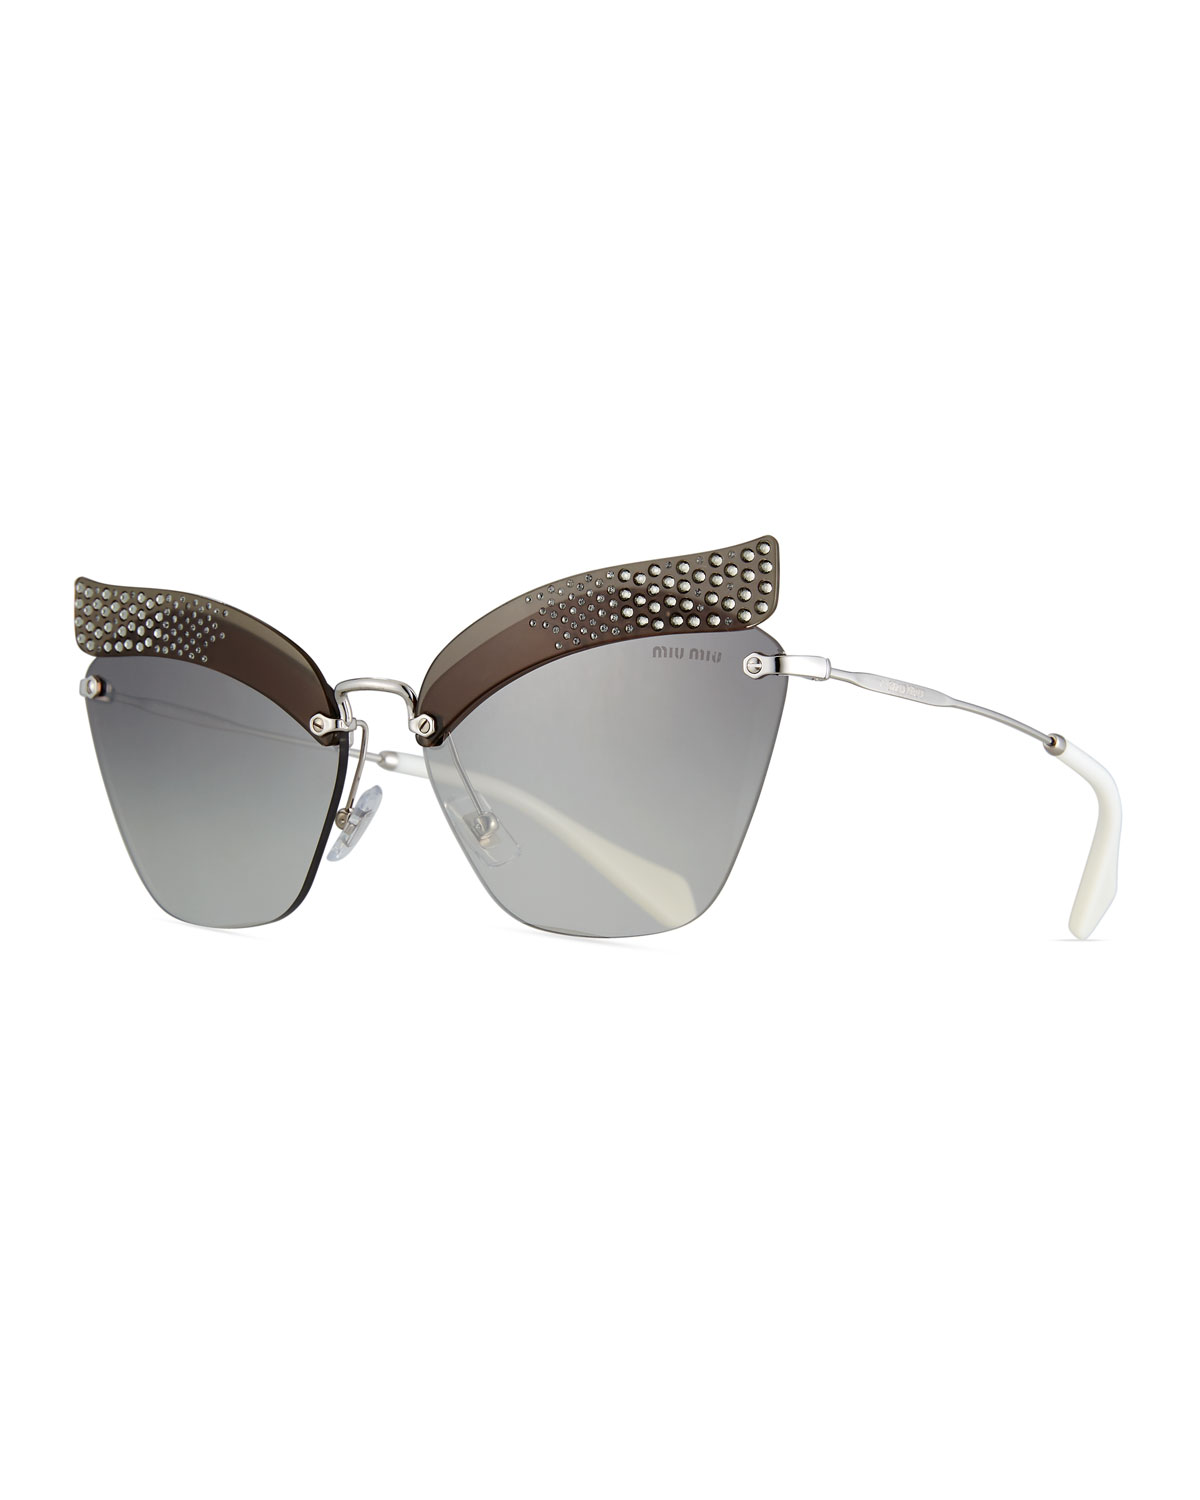 a759e25c19 Miu Miu Rimless Butterfly Metal Sunglasses with Gradient Mirror Lenses